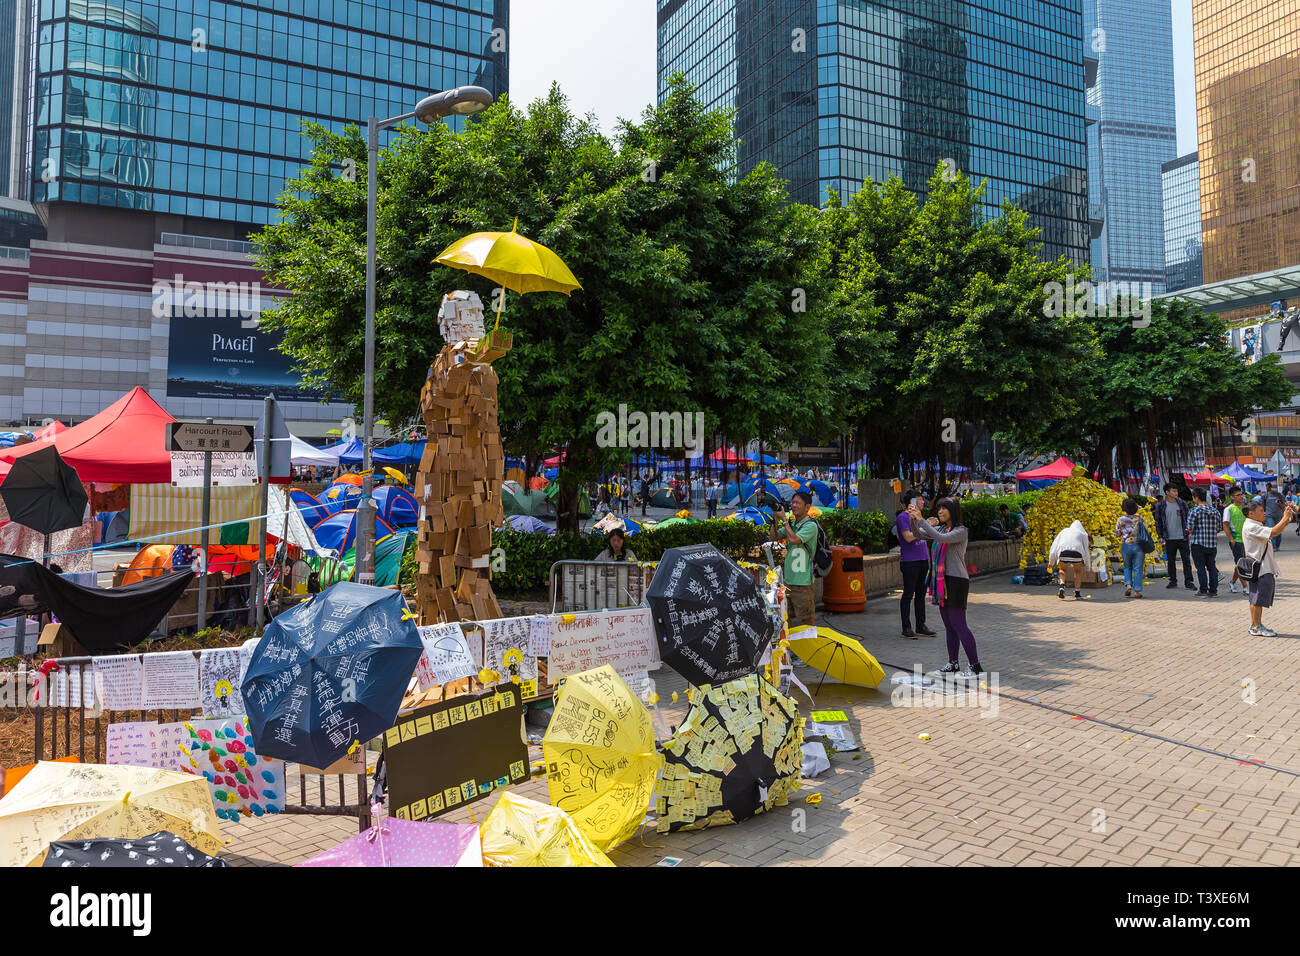 Hong Kong Yellow Umbrella protests saw main roads blockaded against traffic closing off whole sections of the Central business districts. Stock Photo